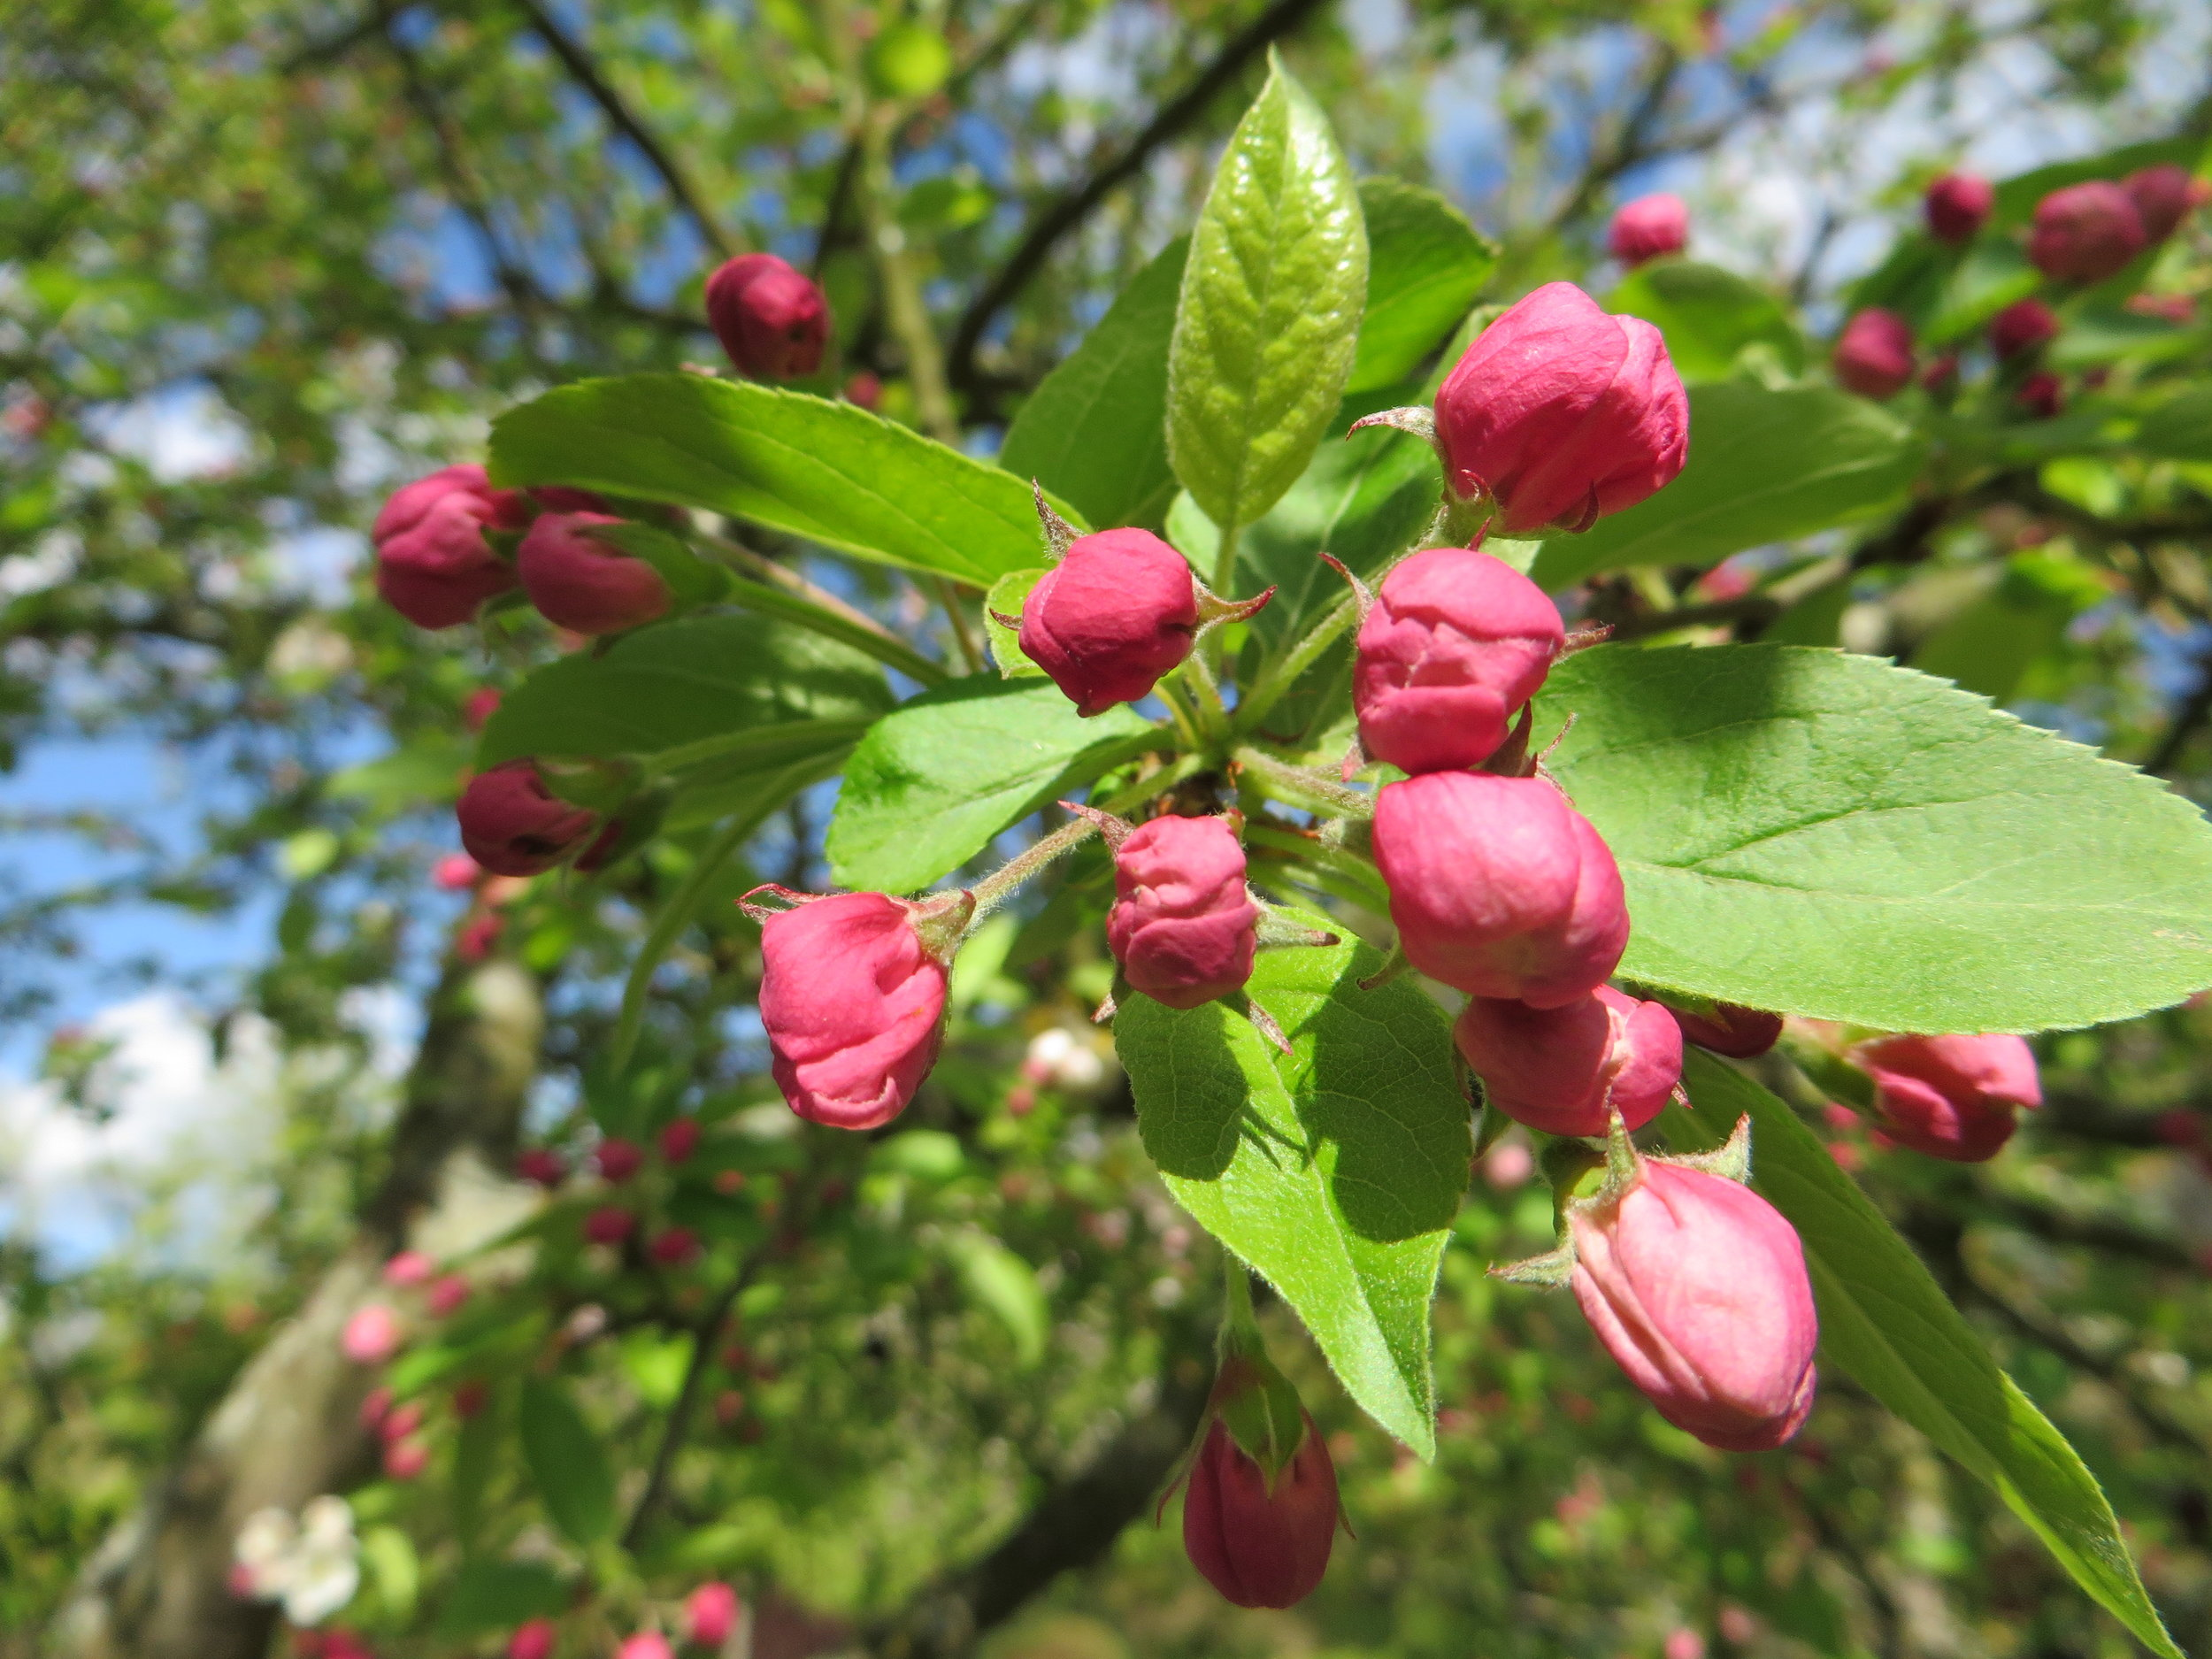 Deep pink buds of  Malus  'Evereste' (crab apple)  (Gillian Goodson Designs)